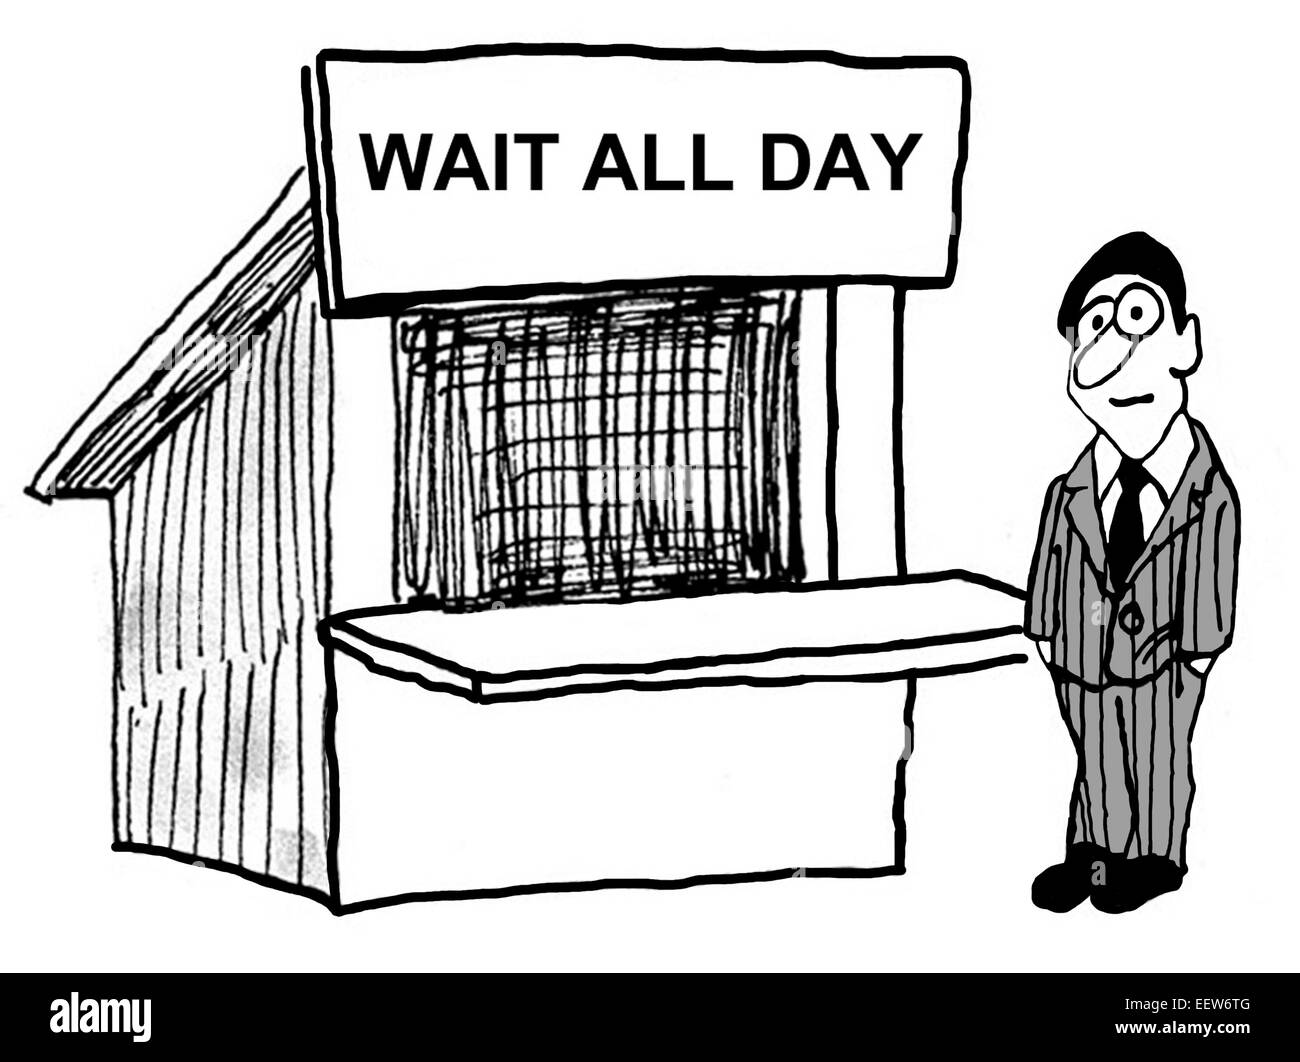 Cartoon showing b businessman with the sign 'wait all day'. - Stock Image